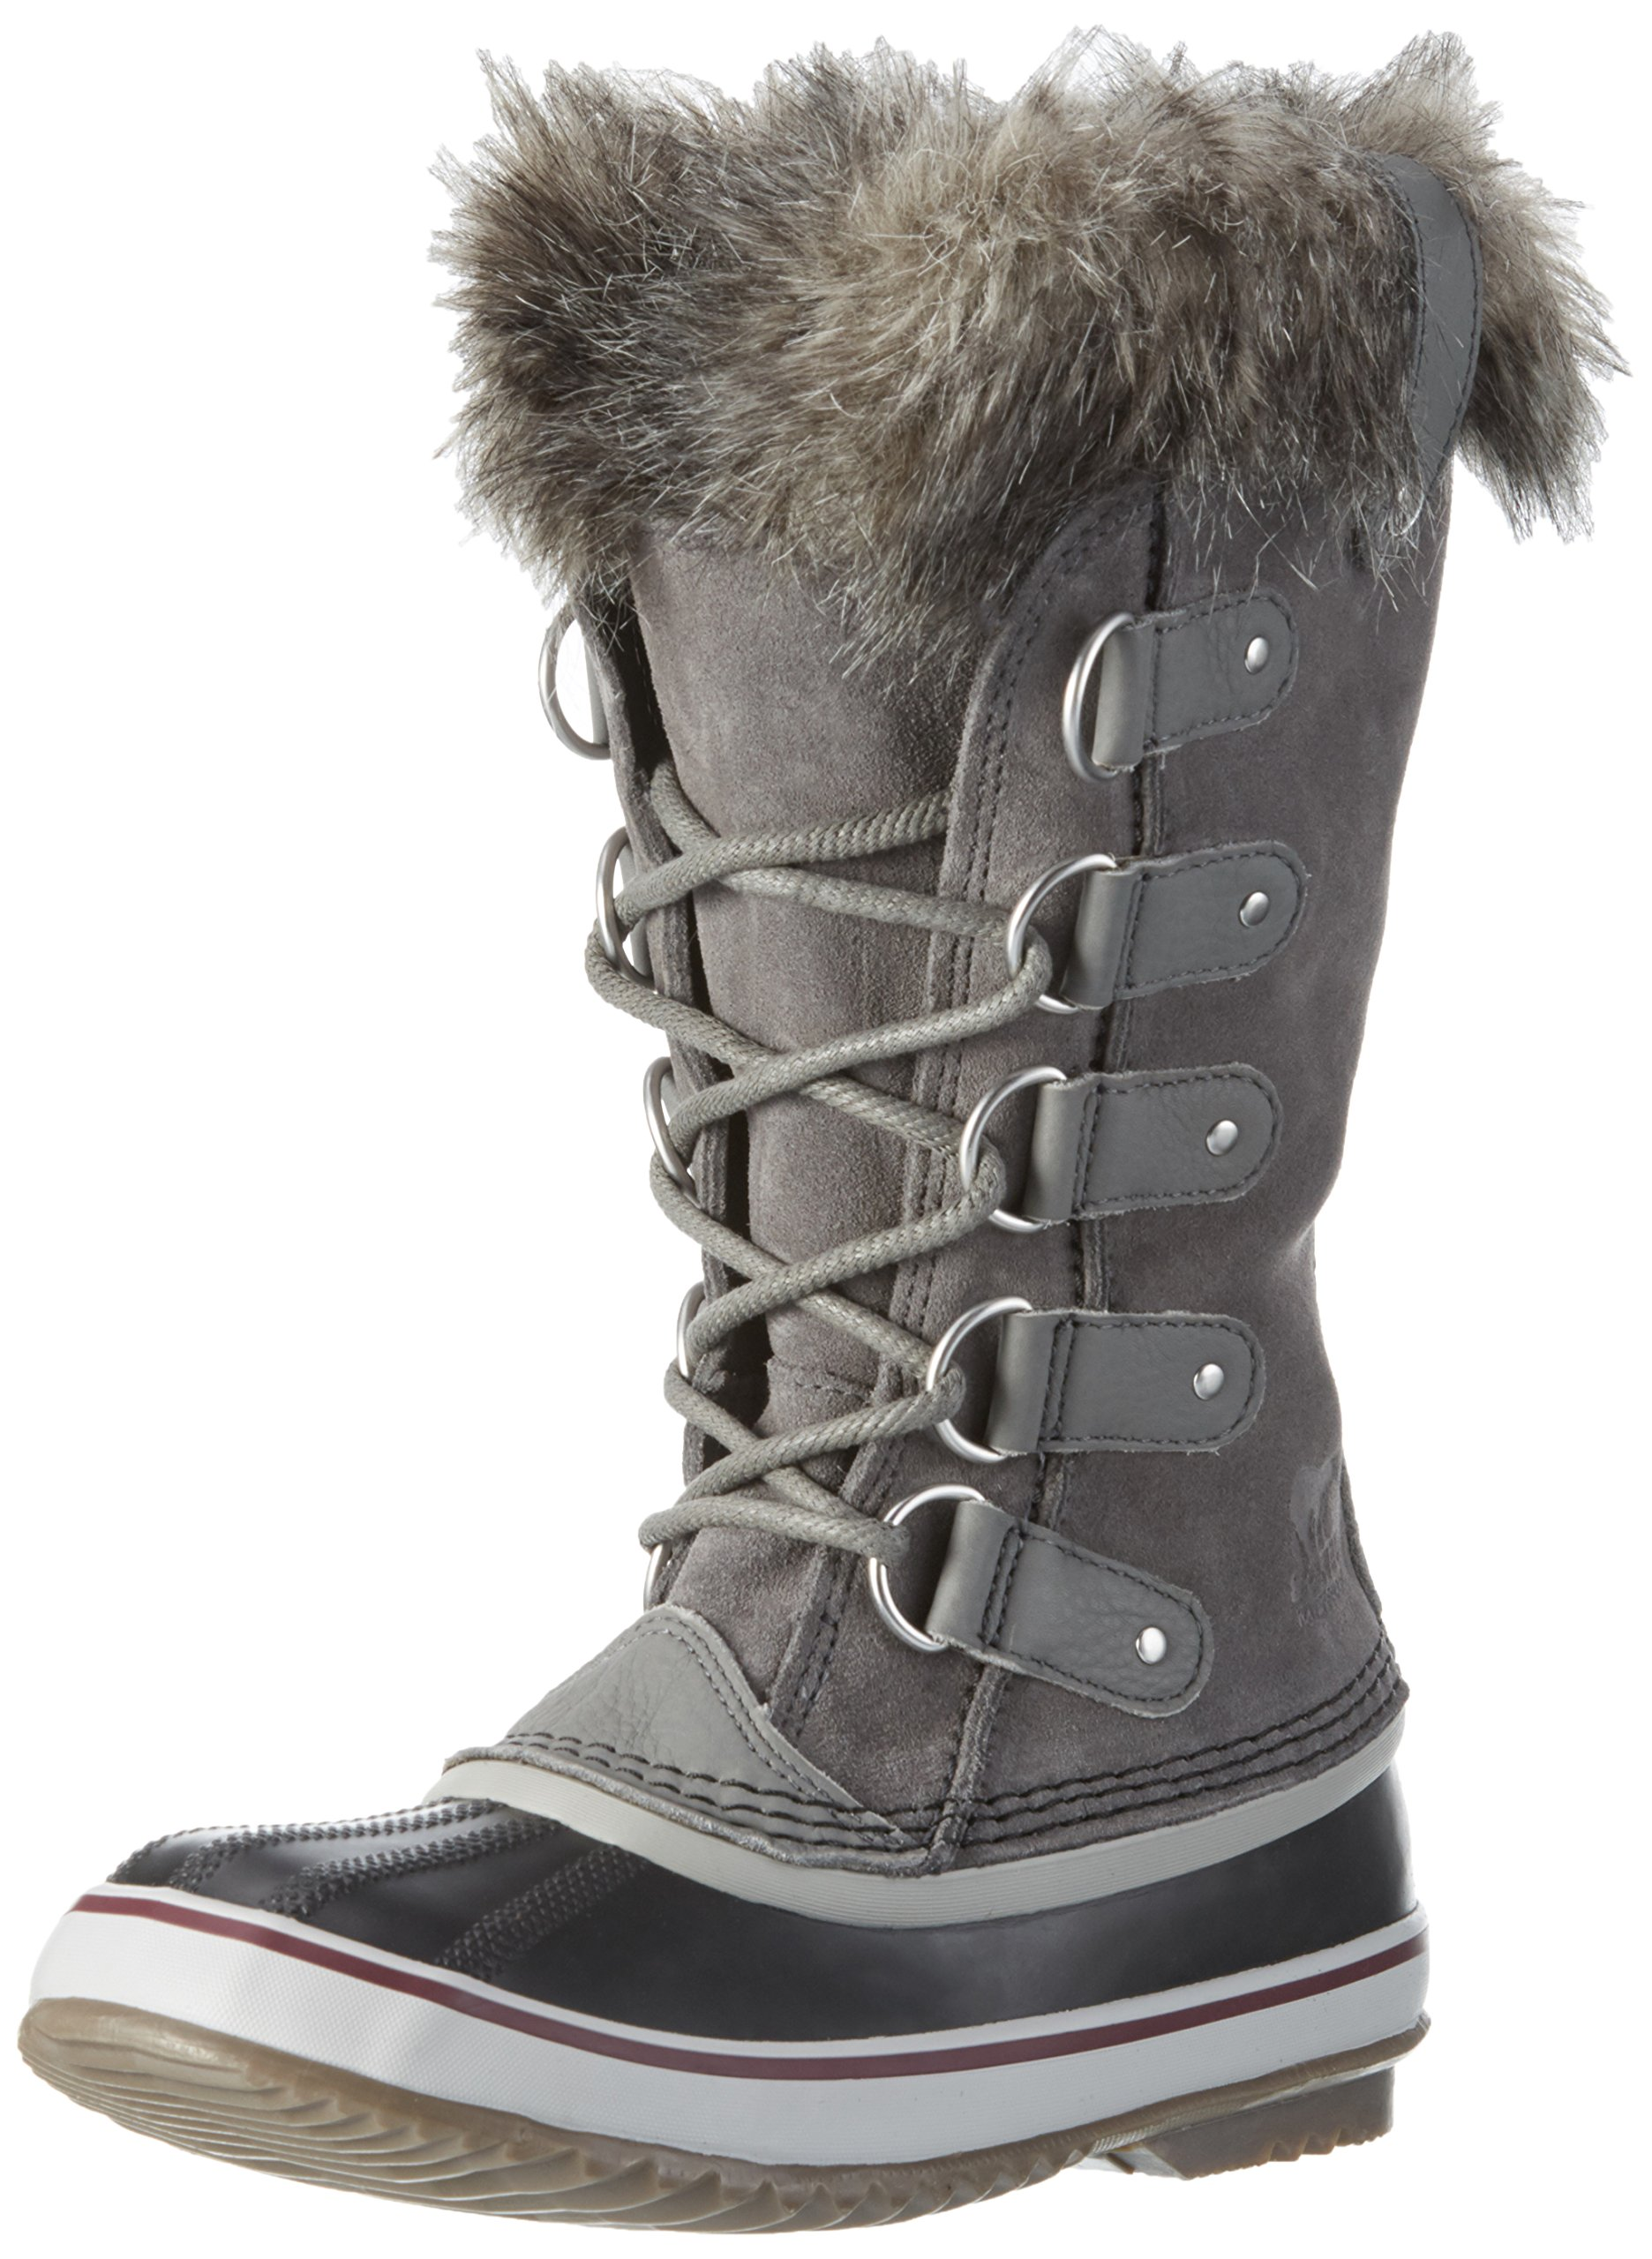 SOREL Women's Joan of Arctic, Quarry, 9.5 B-Medium by SOREL